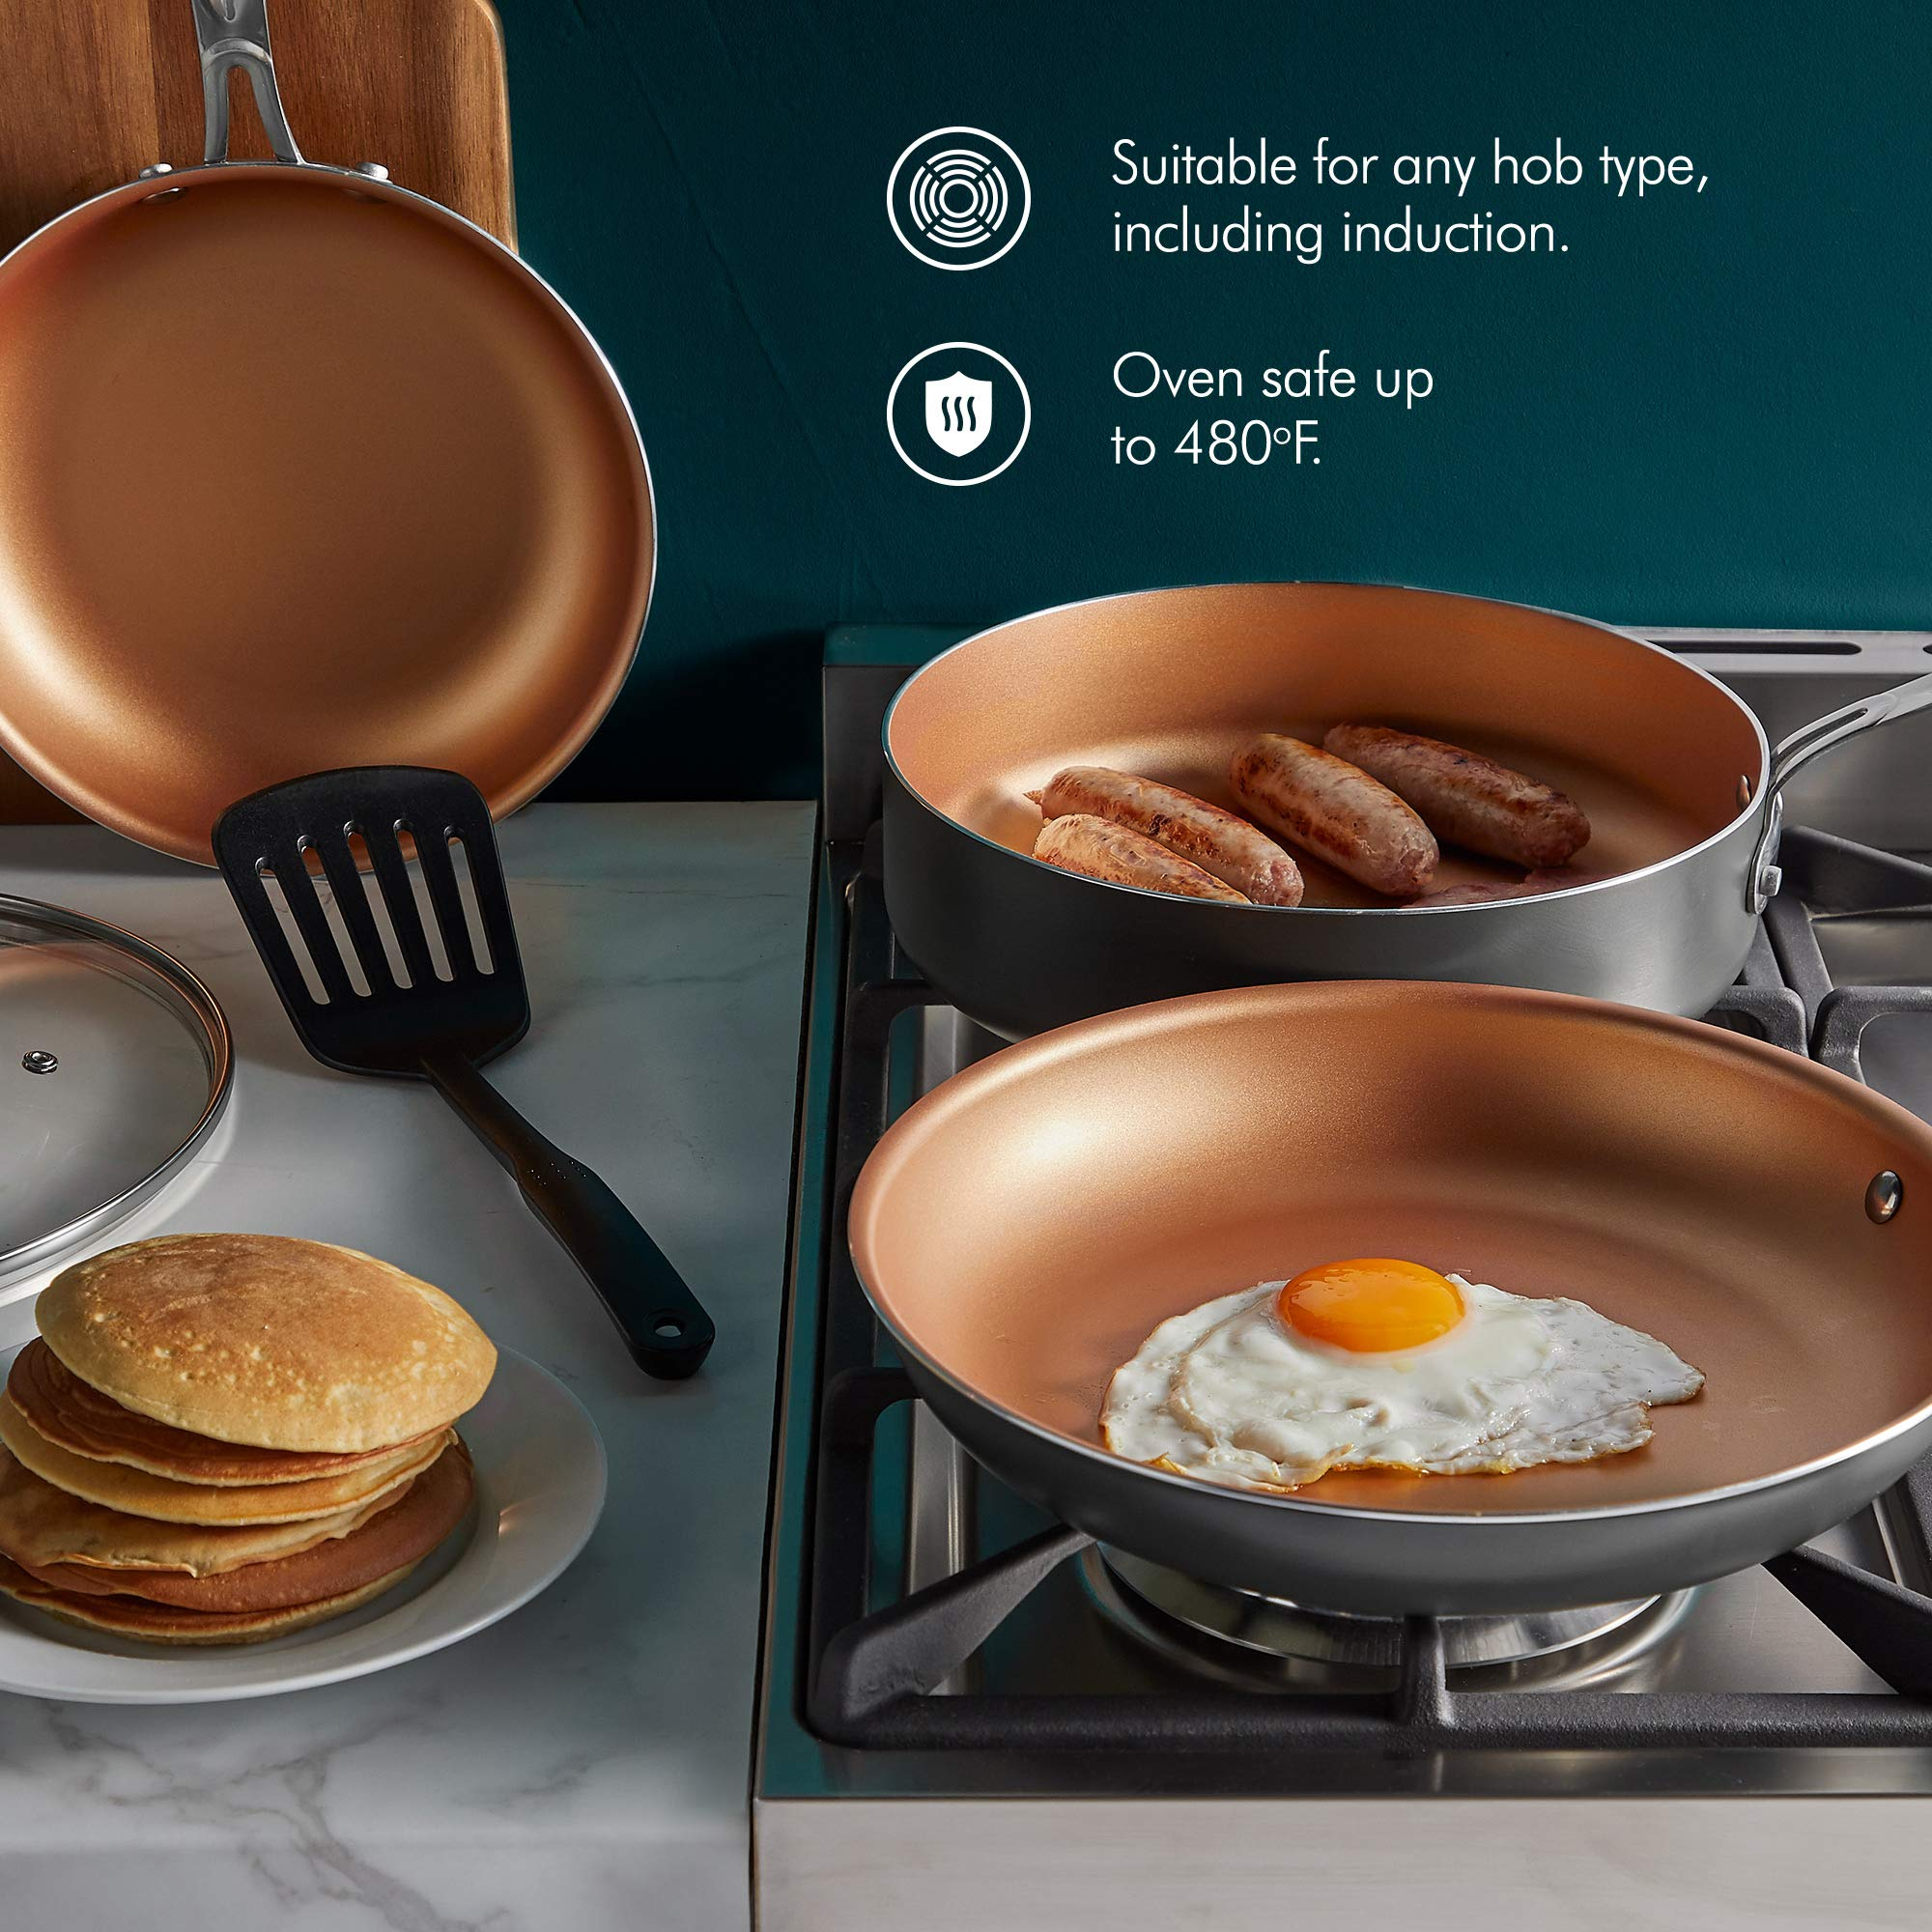 VonShef Non Stick Frying Pan Set - 8'', 10'' & 11'' Aluminum Skillets, Copper-Colored Interior, Stainless Steel Handles, Tempered Glass Lids and Spatula, Oven Safe and Induction Hob Ready, 6pc Set by VonShef (Image #4)